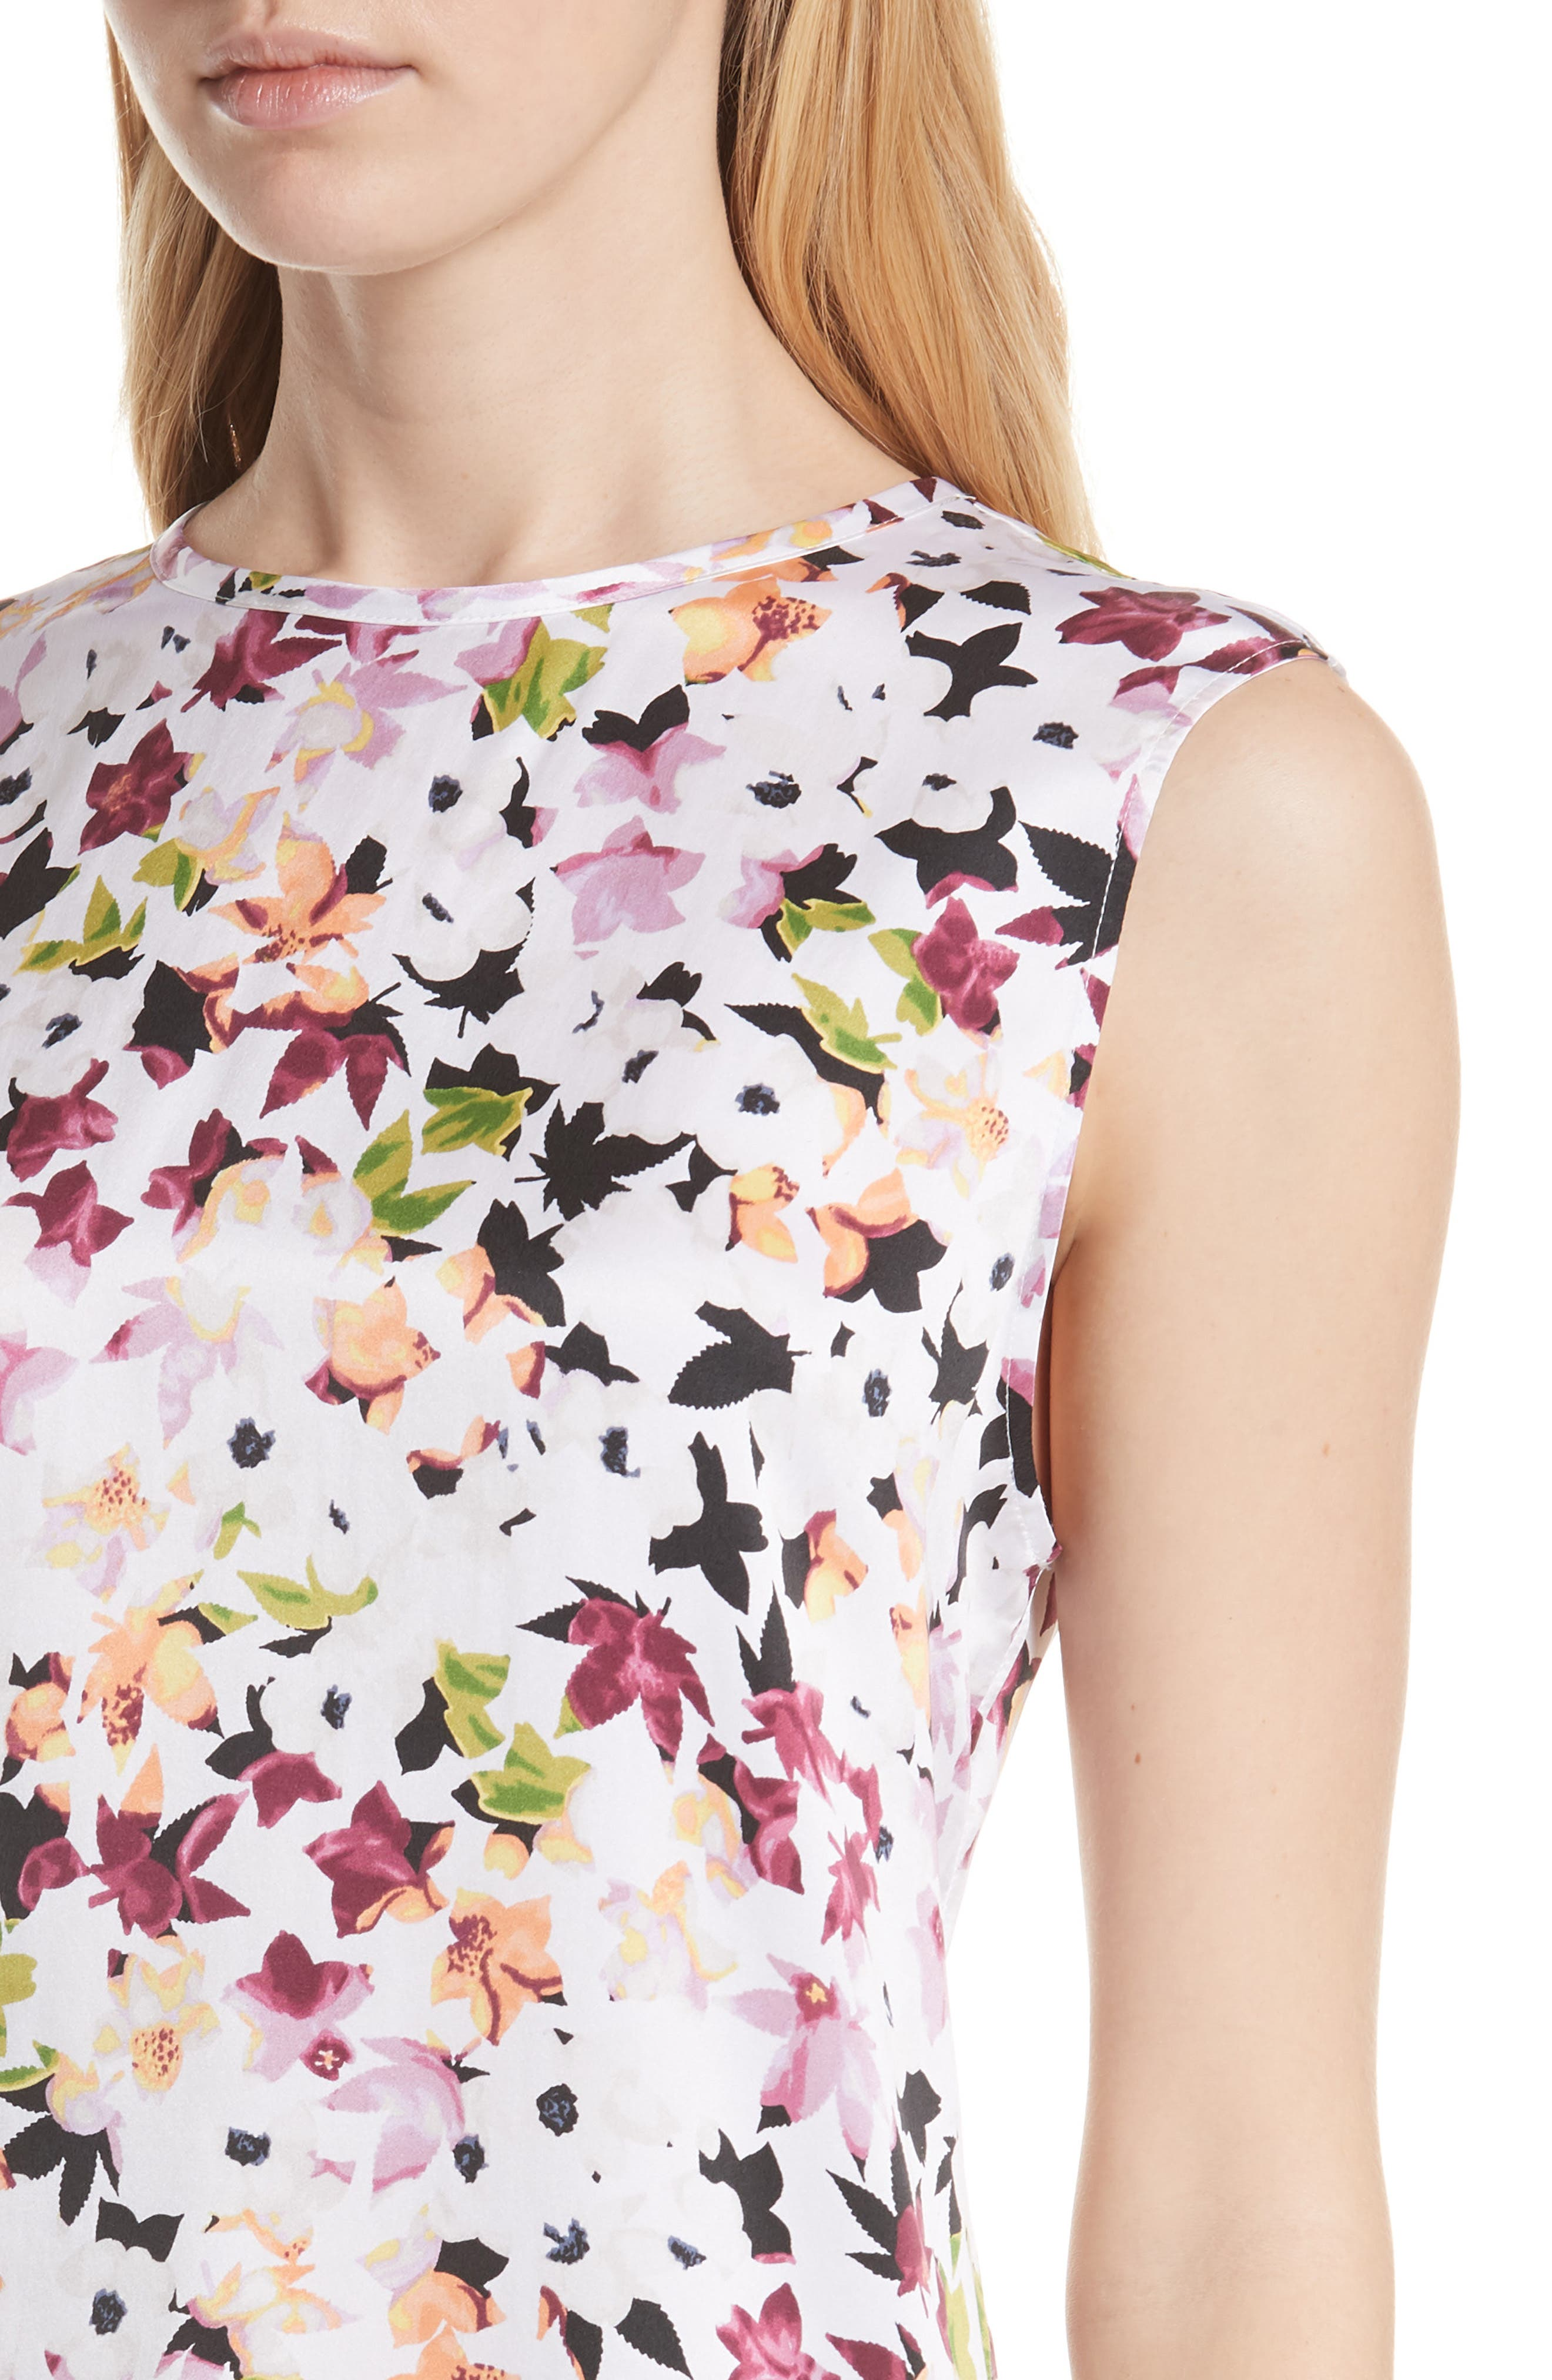 Layla Floral Silk Top,                             Alternate thumbnail 4, color,                             Bright White Multi